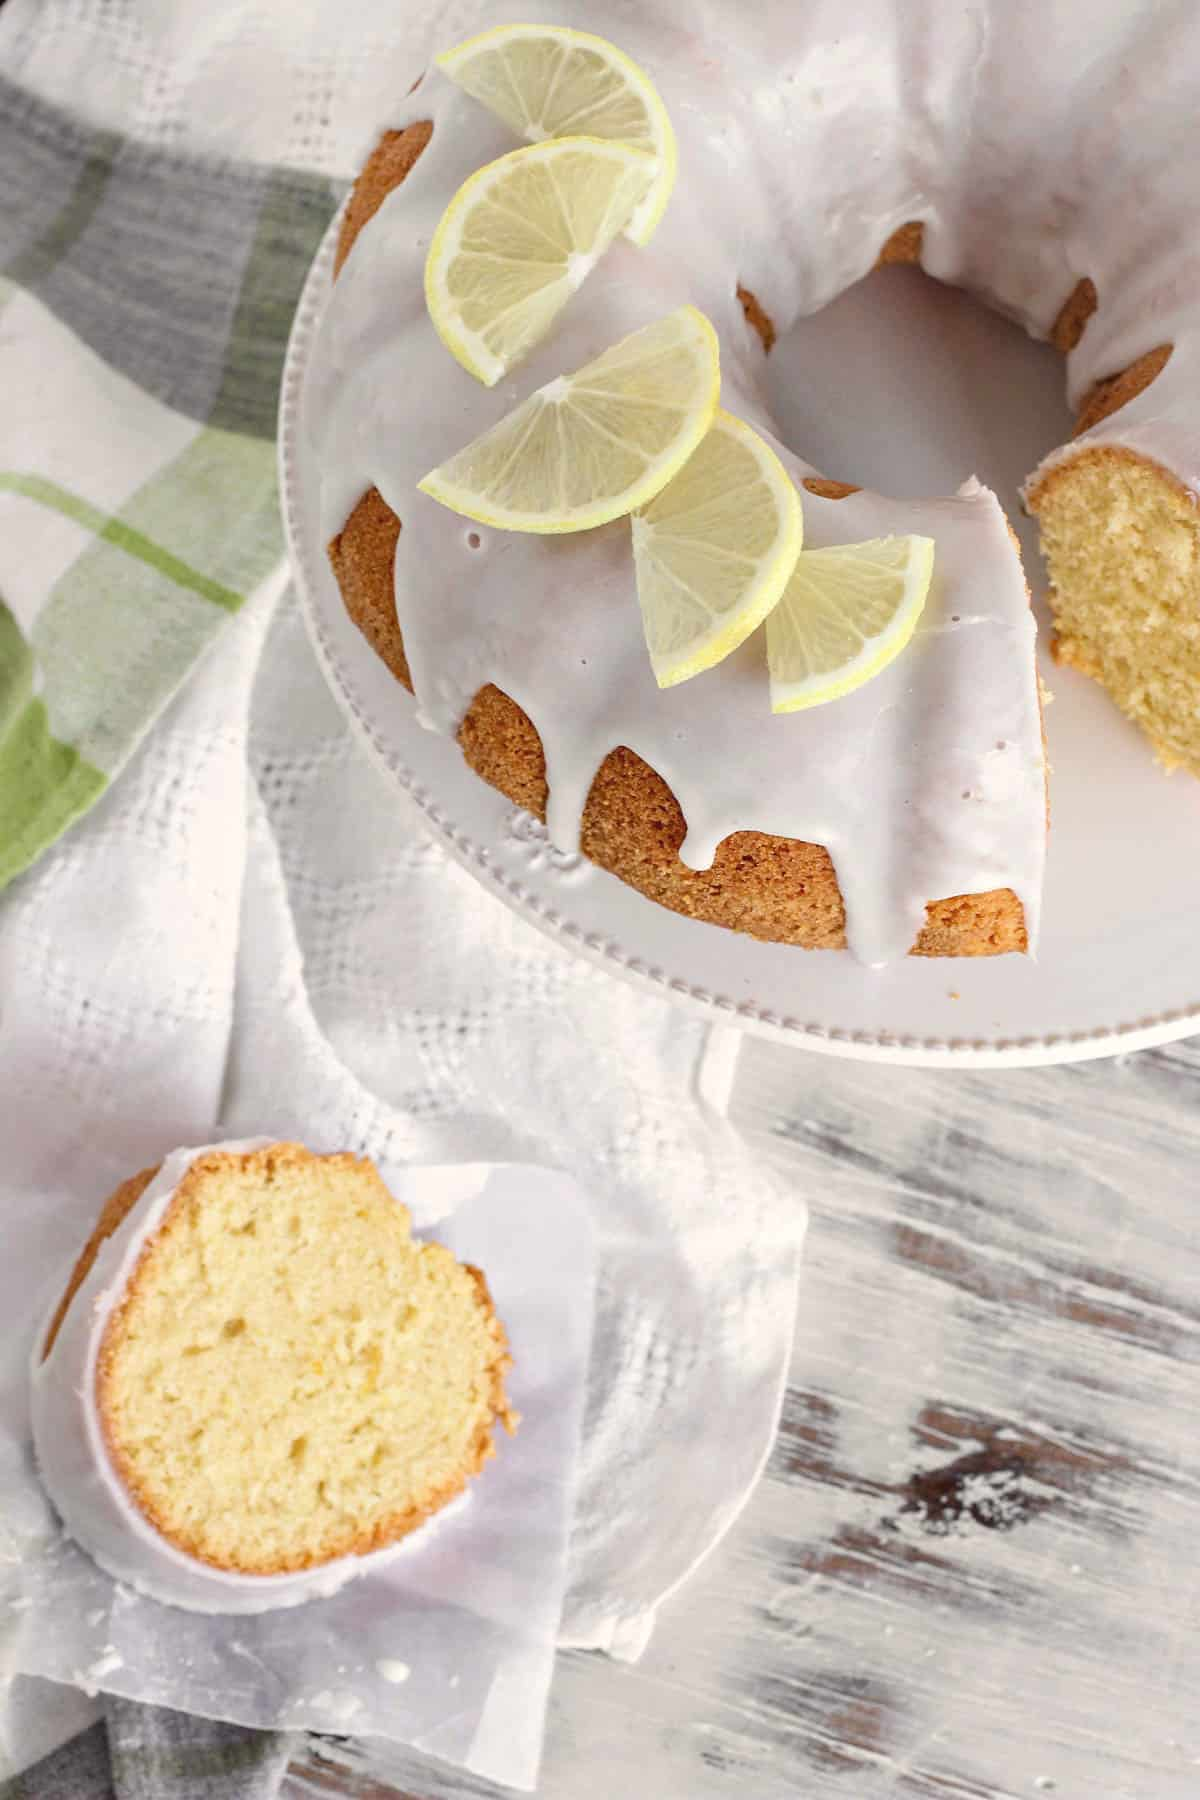 Sliced and glazed OLIVE OIL LEMON CAKE with lemon decoration